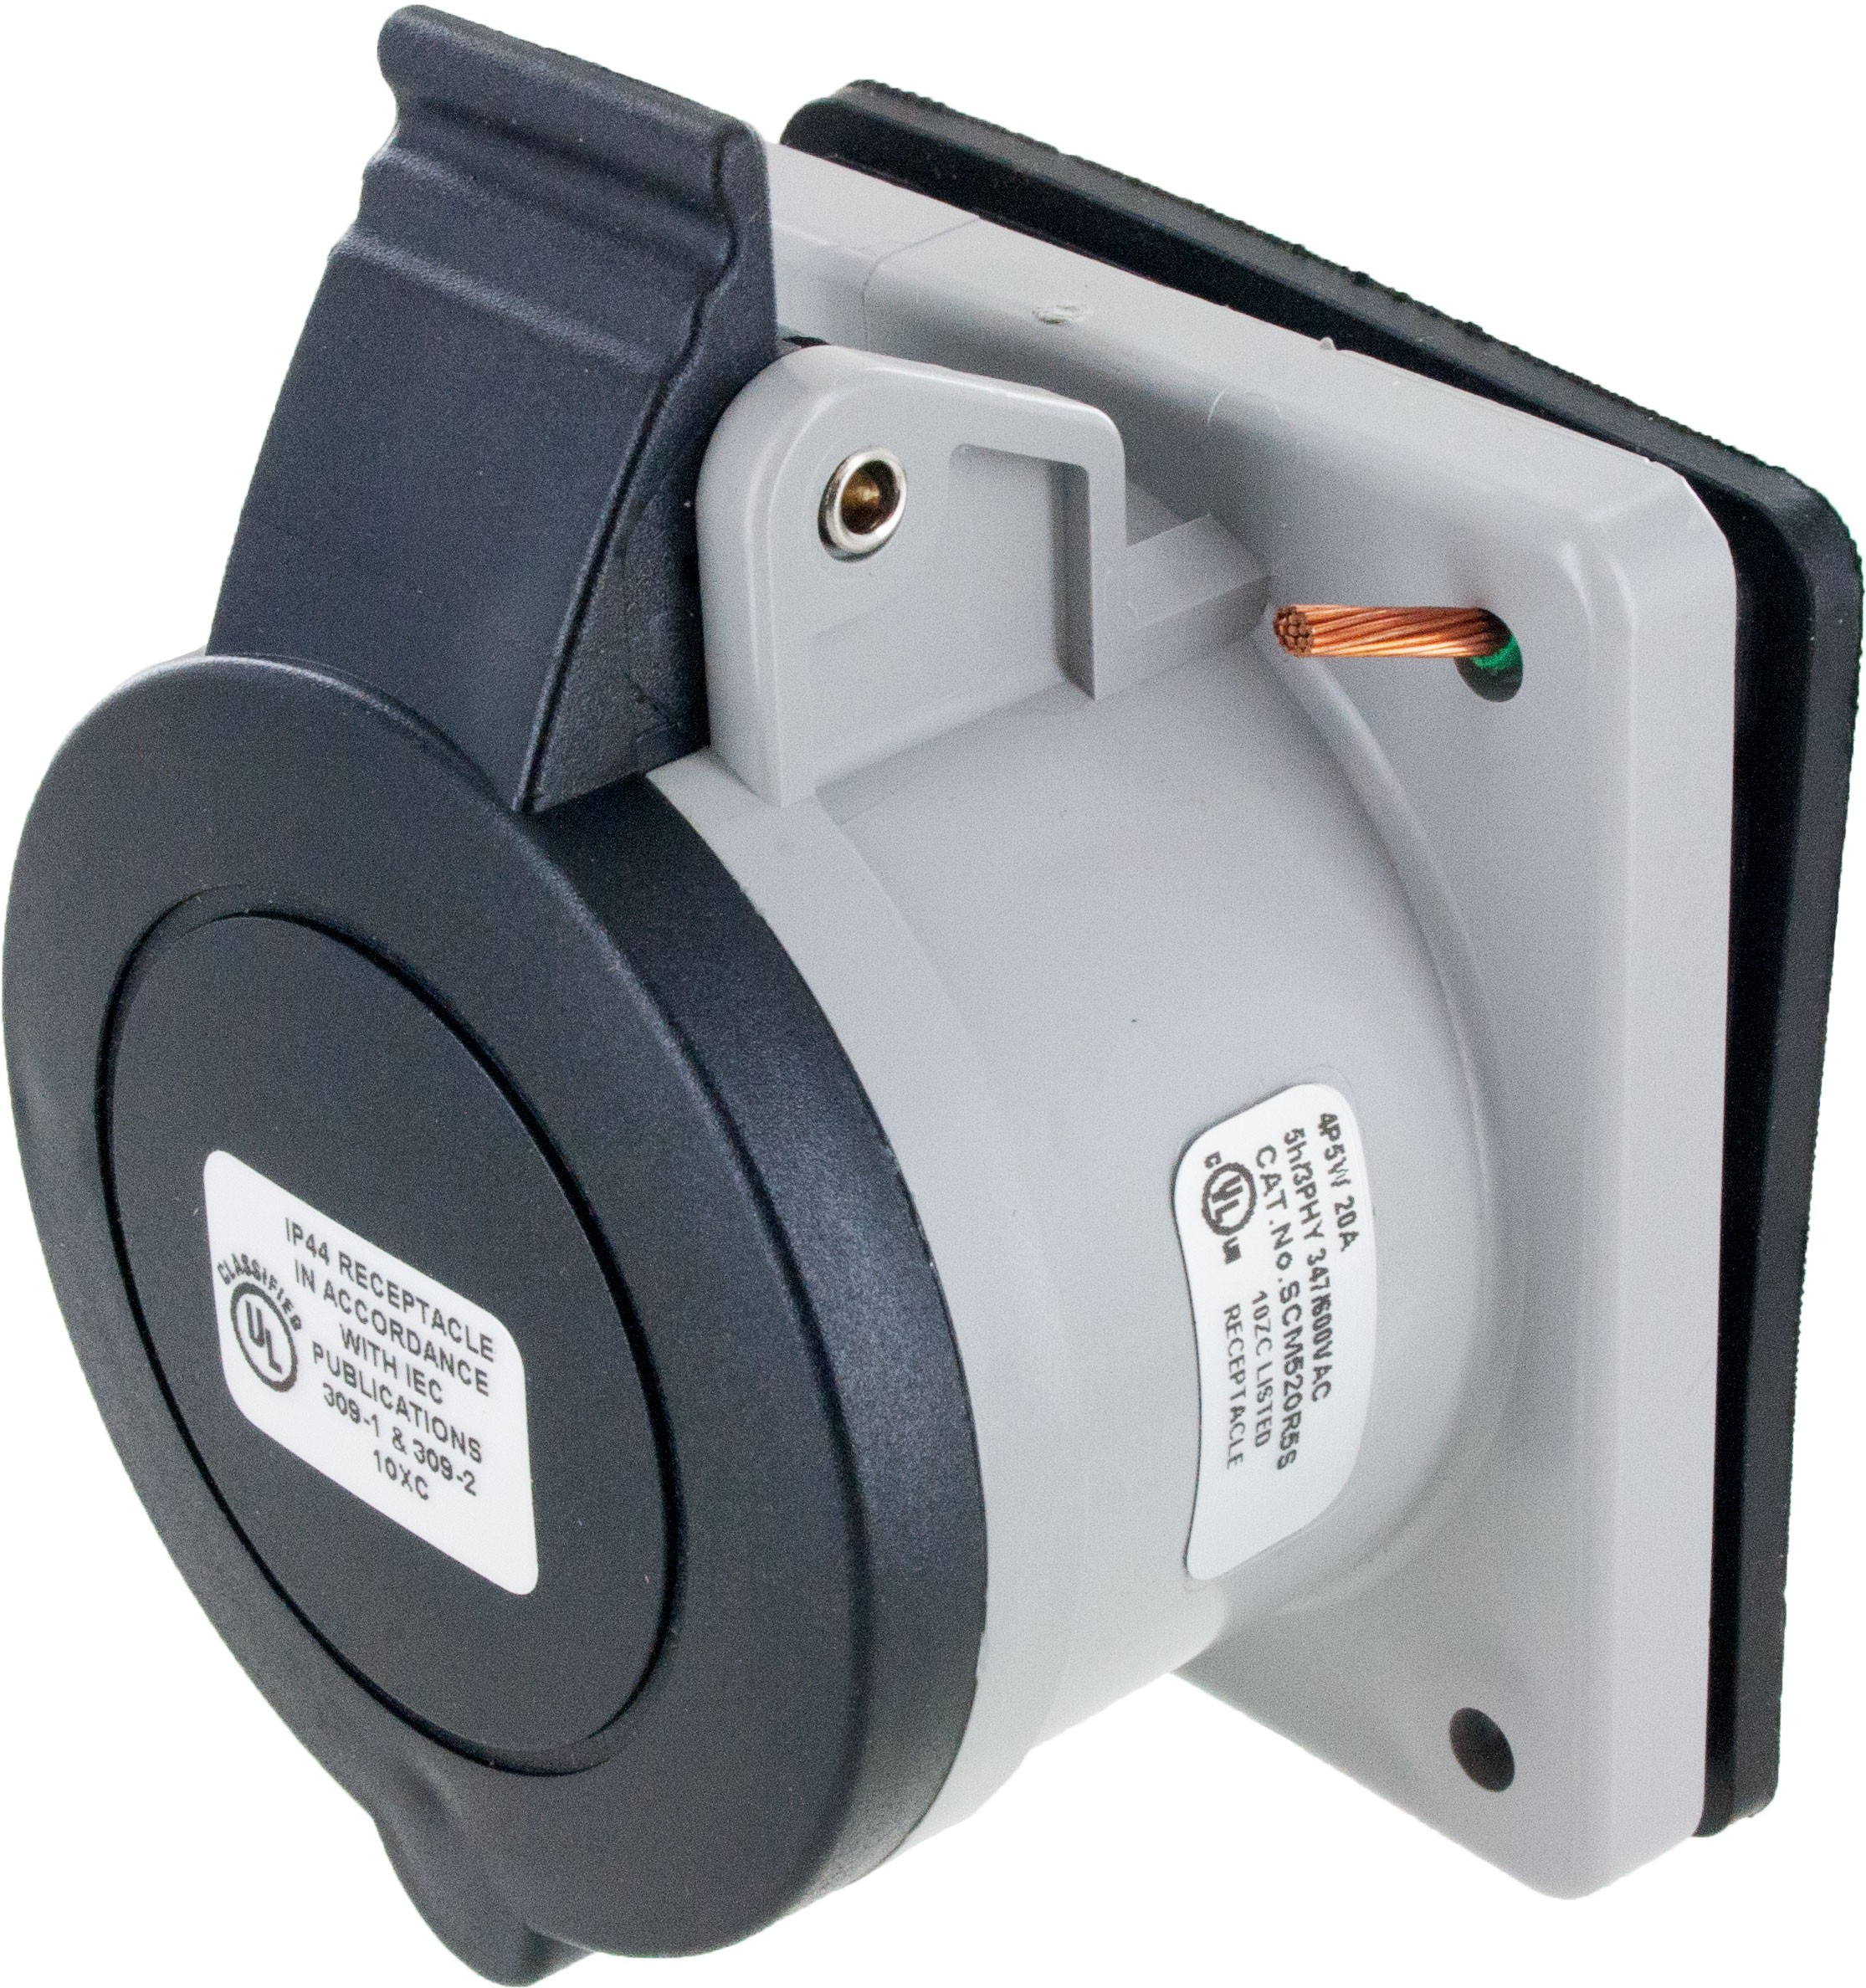 520R5S Pin And Sleeve Receptacle 20 Amp 4 Pole 5 Wire